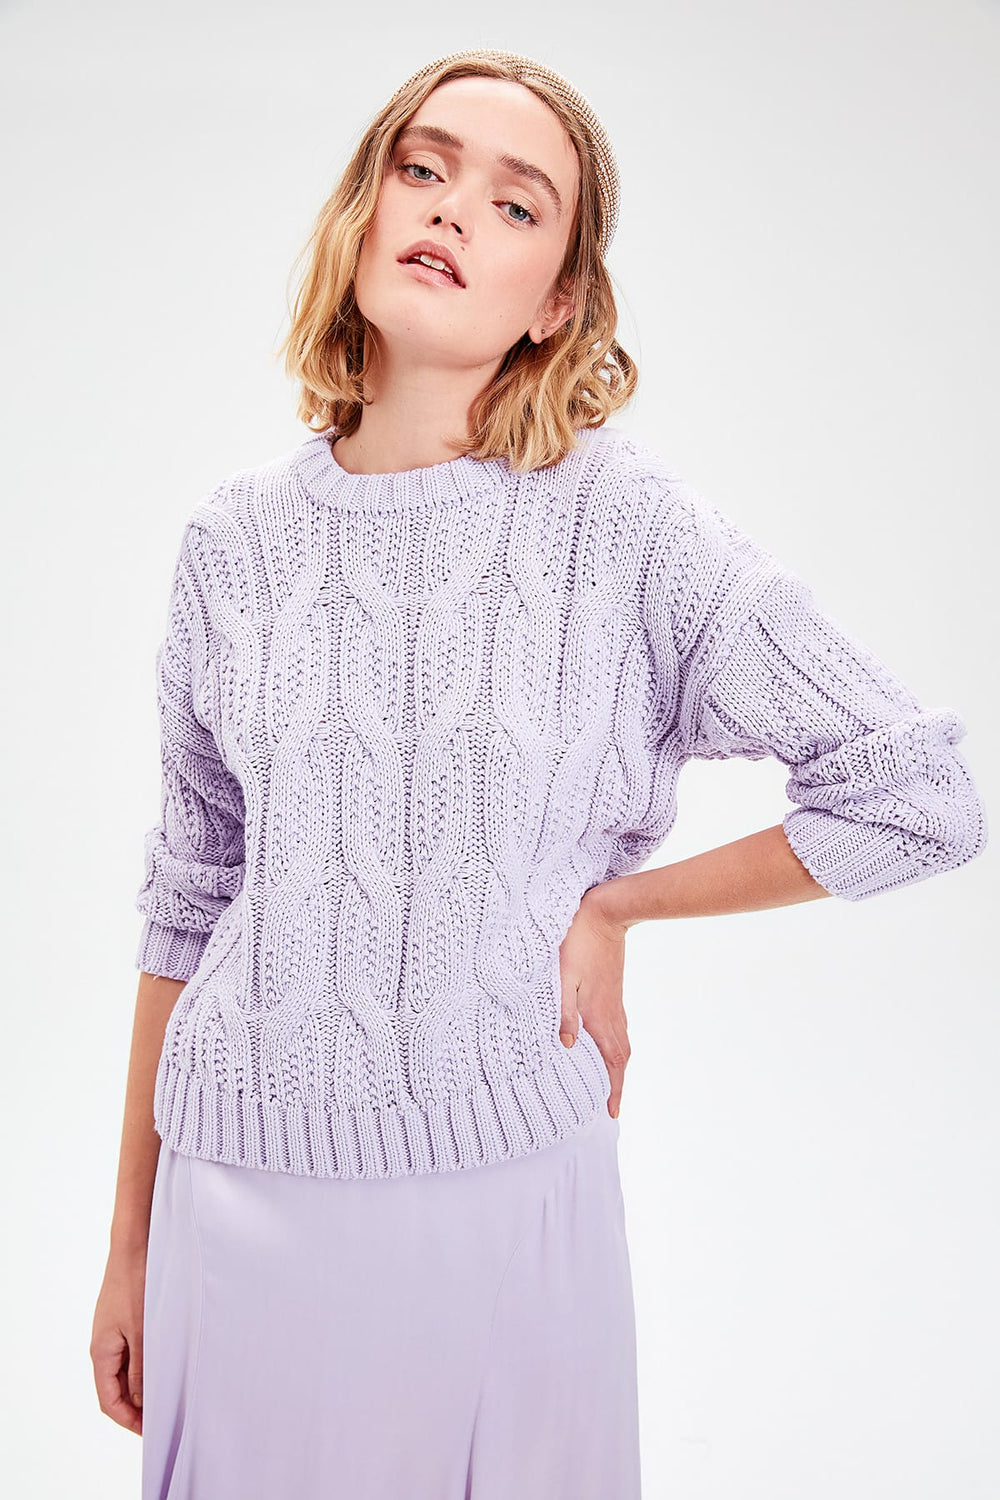 Miss Zut Miss Zut Lilac Hair Braided Knitwear Sweater Miss Zut &CO